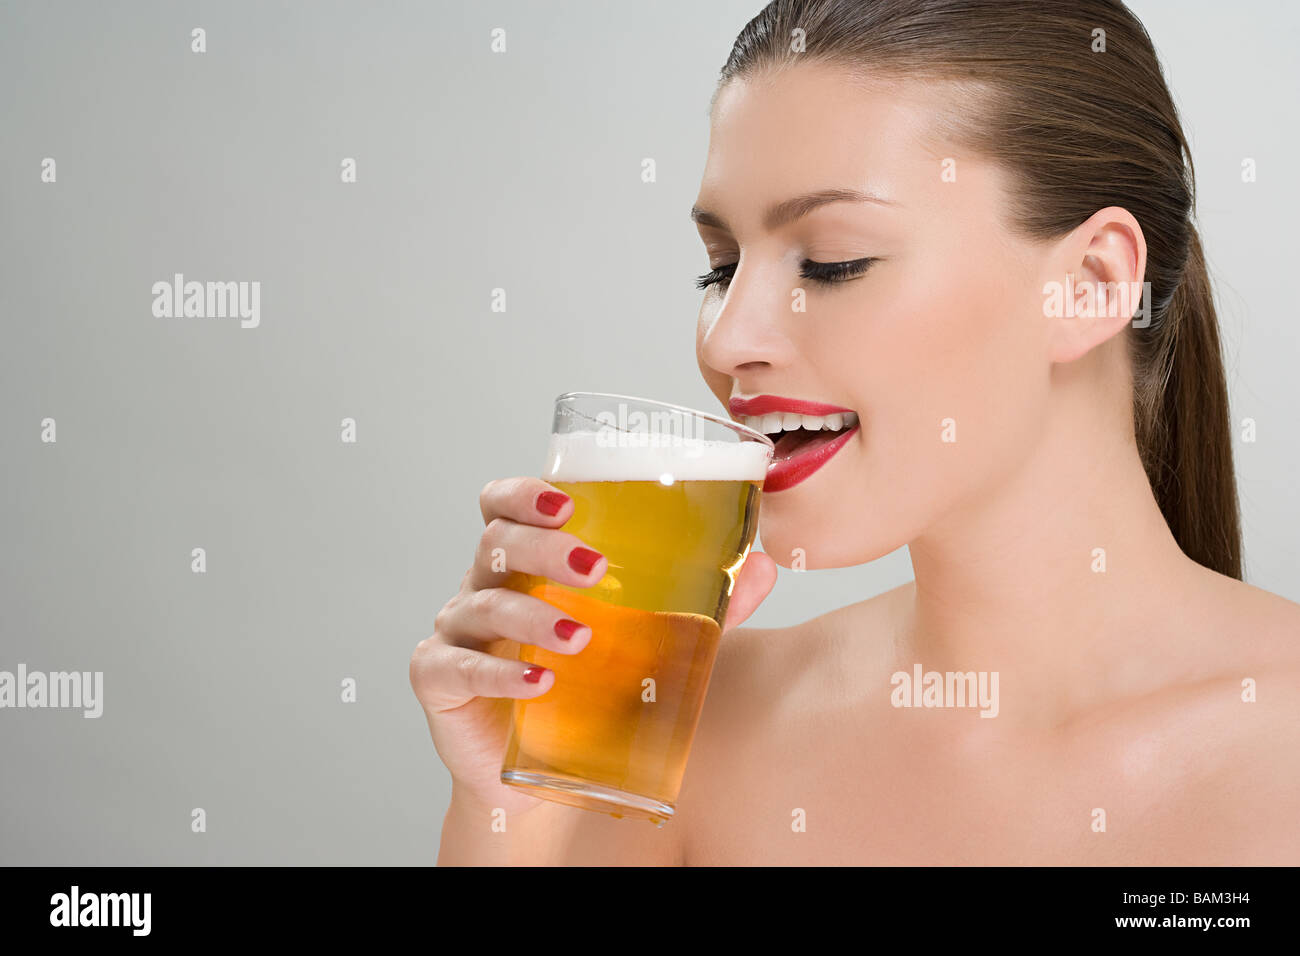 Woman drinking a pint of lager - Stock Image